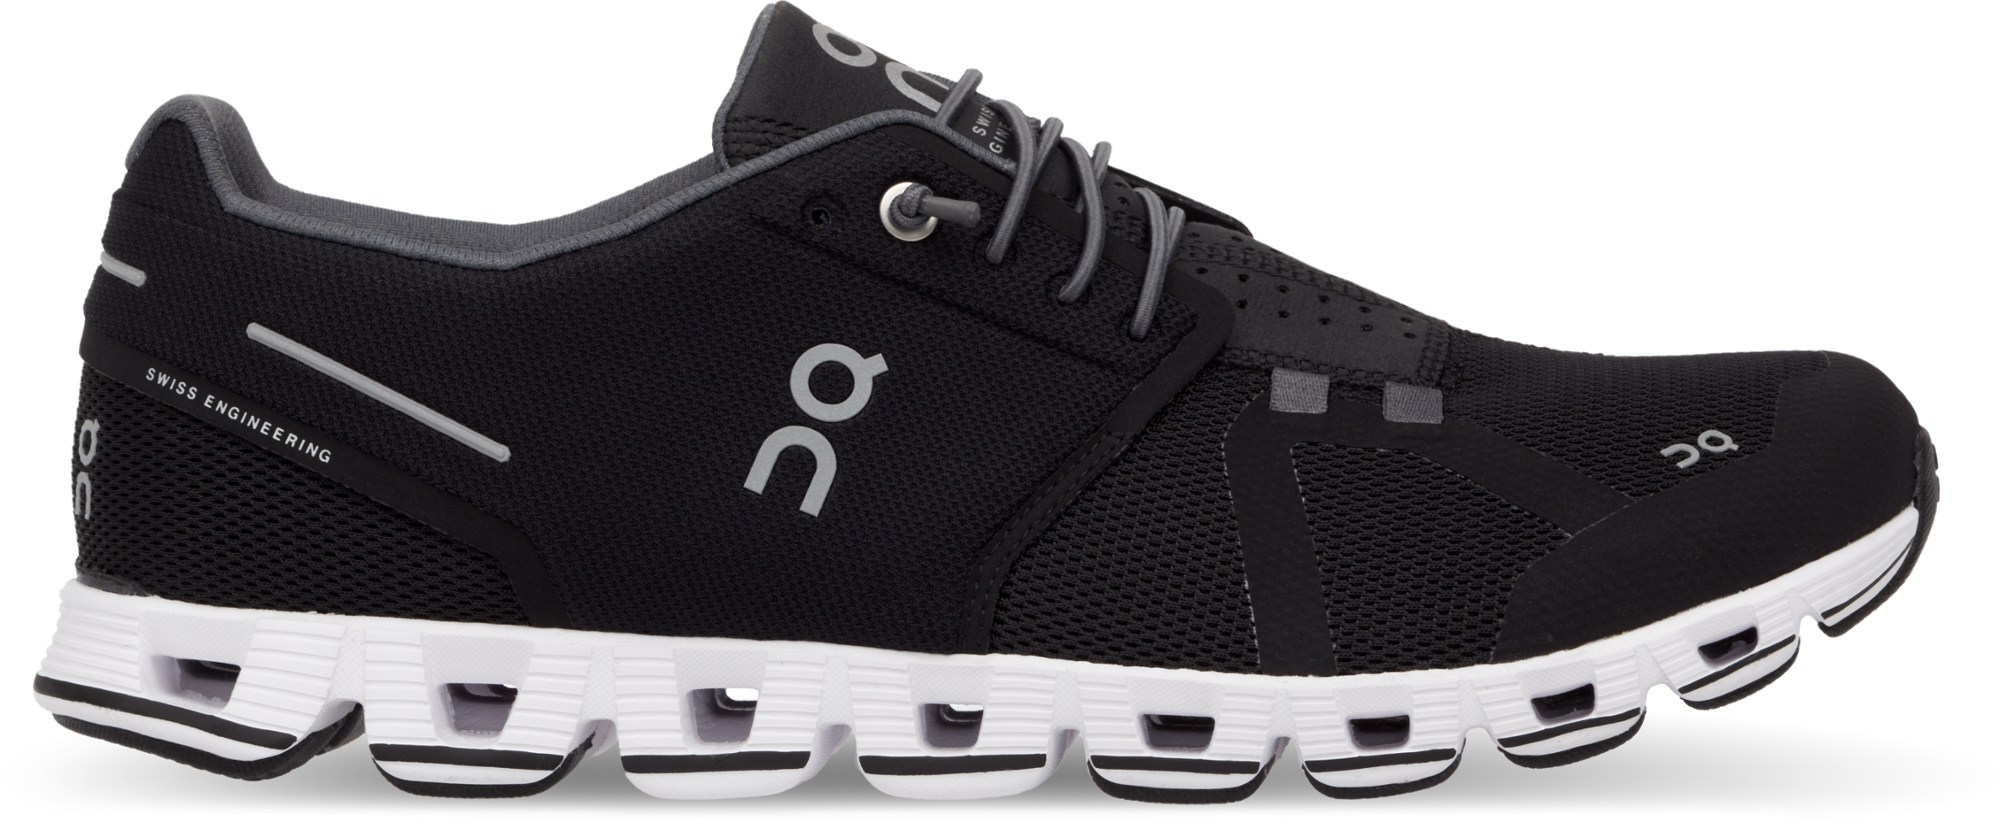 On Cloud Road-Running Shoes - Men's